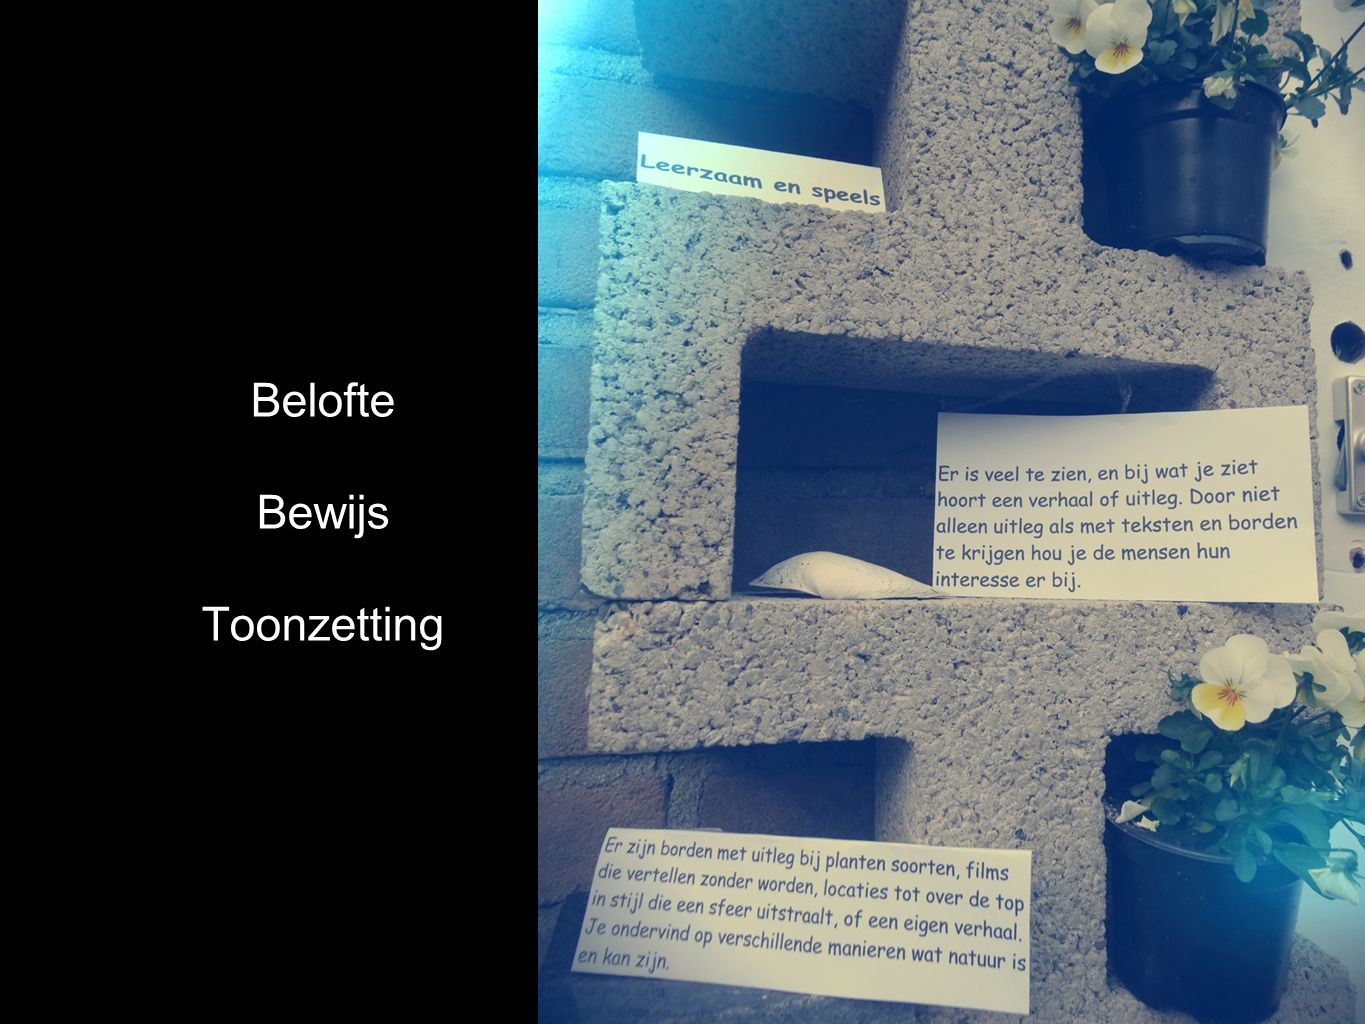 Belofte Bewijs Toonzetting